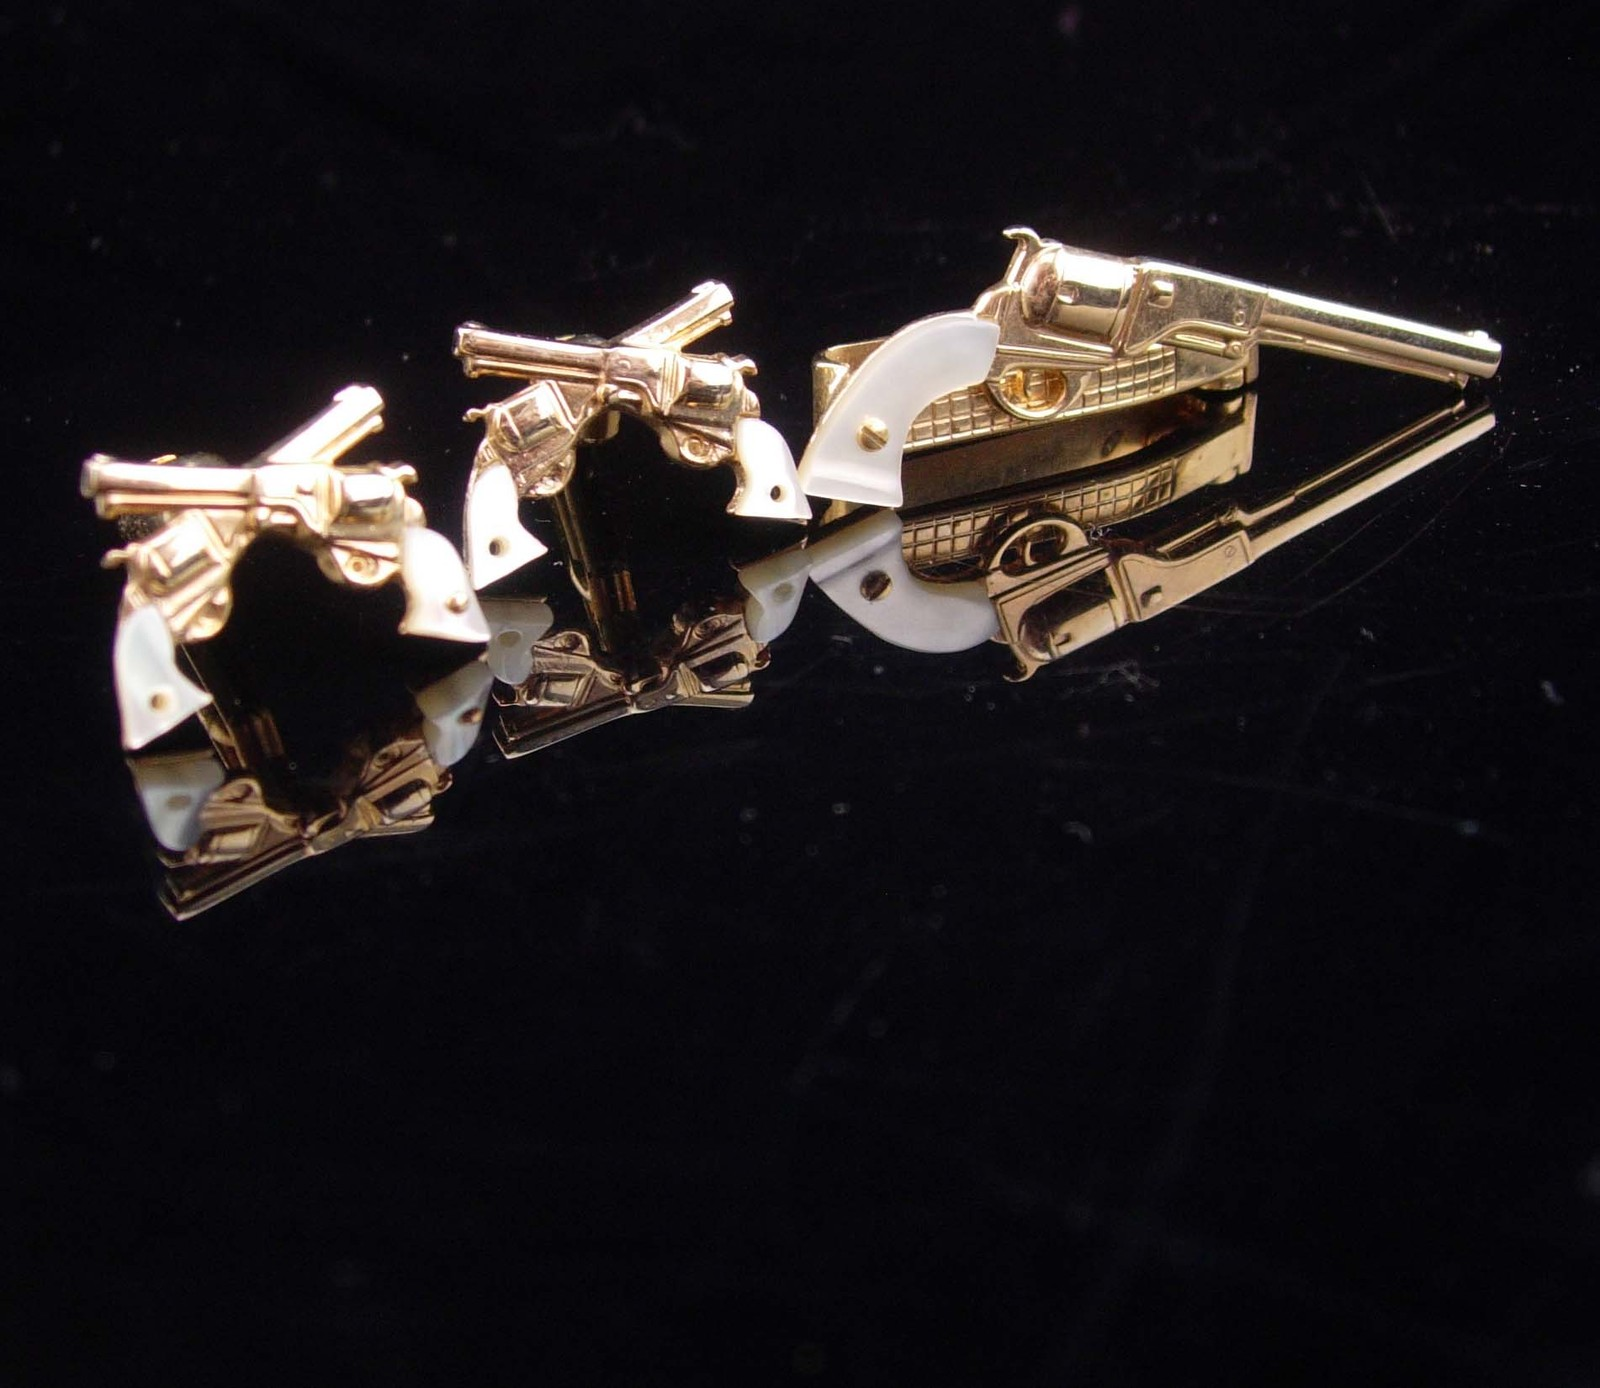 e0f68e96a205 Cowboy Cufflinks / Vintage pistol Tie Clip / and 50 similar items